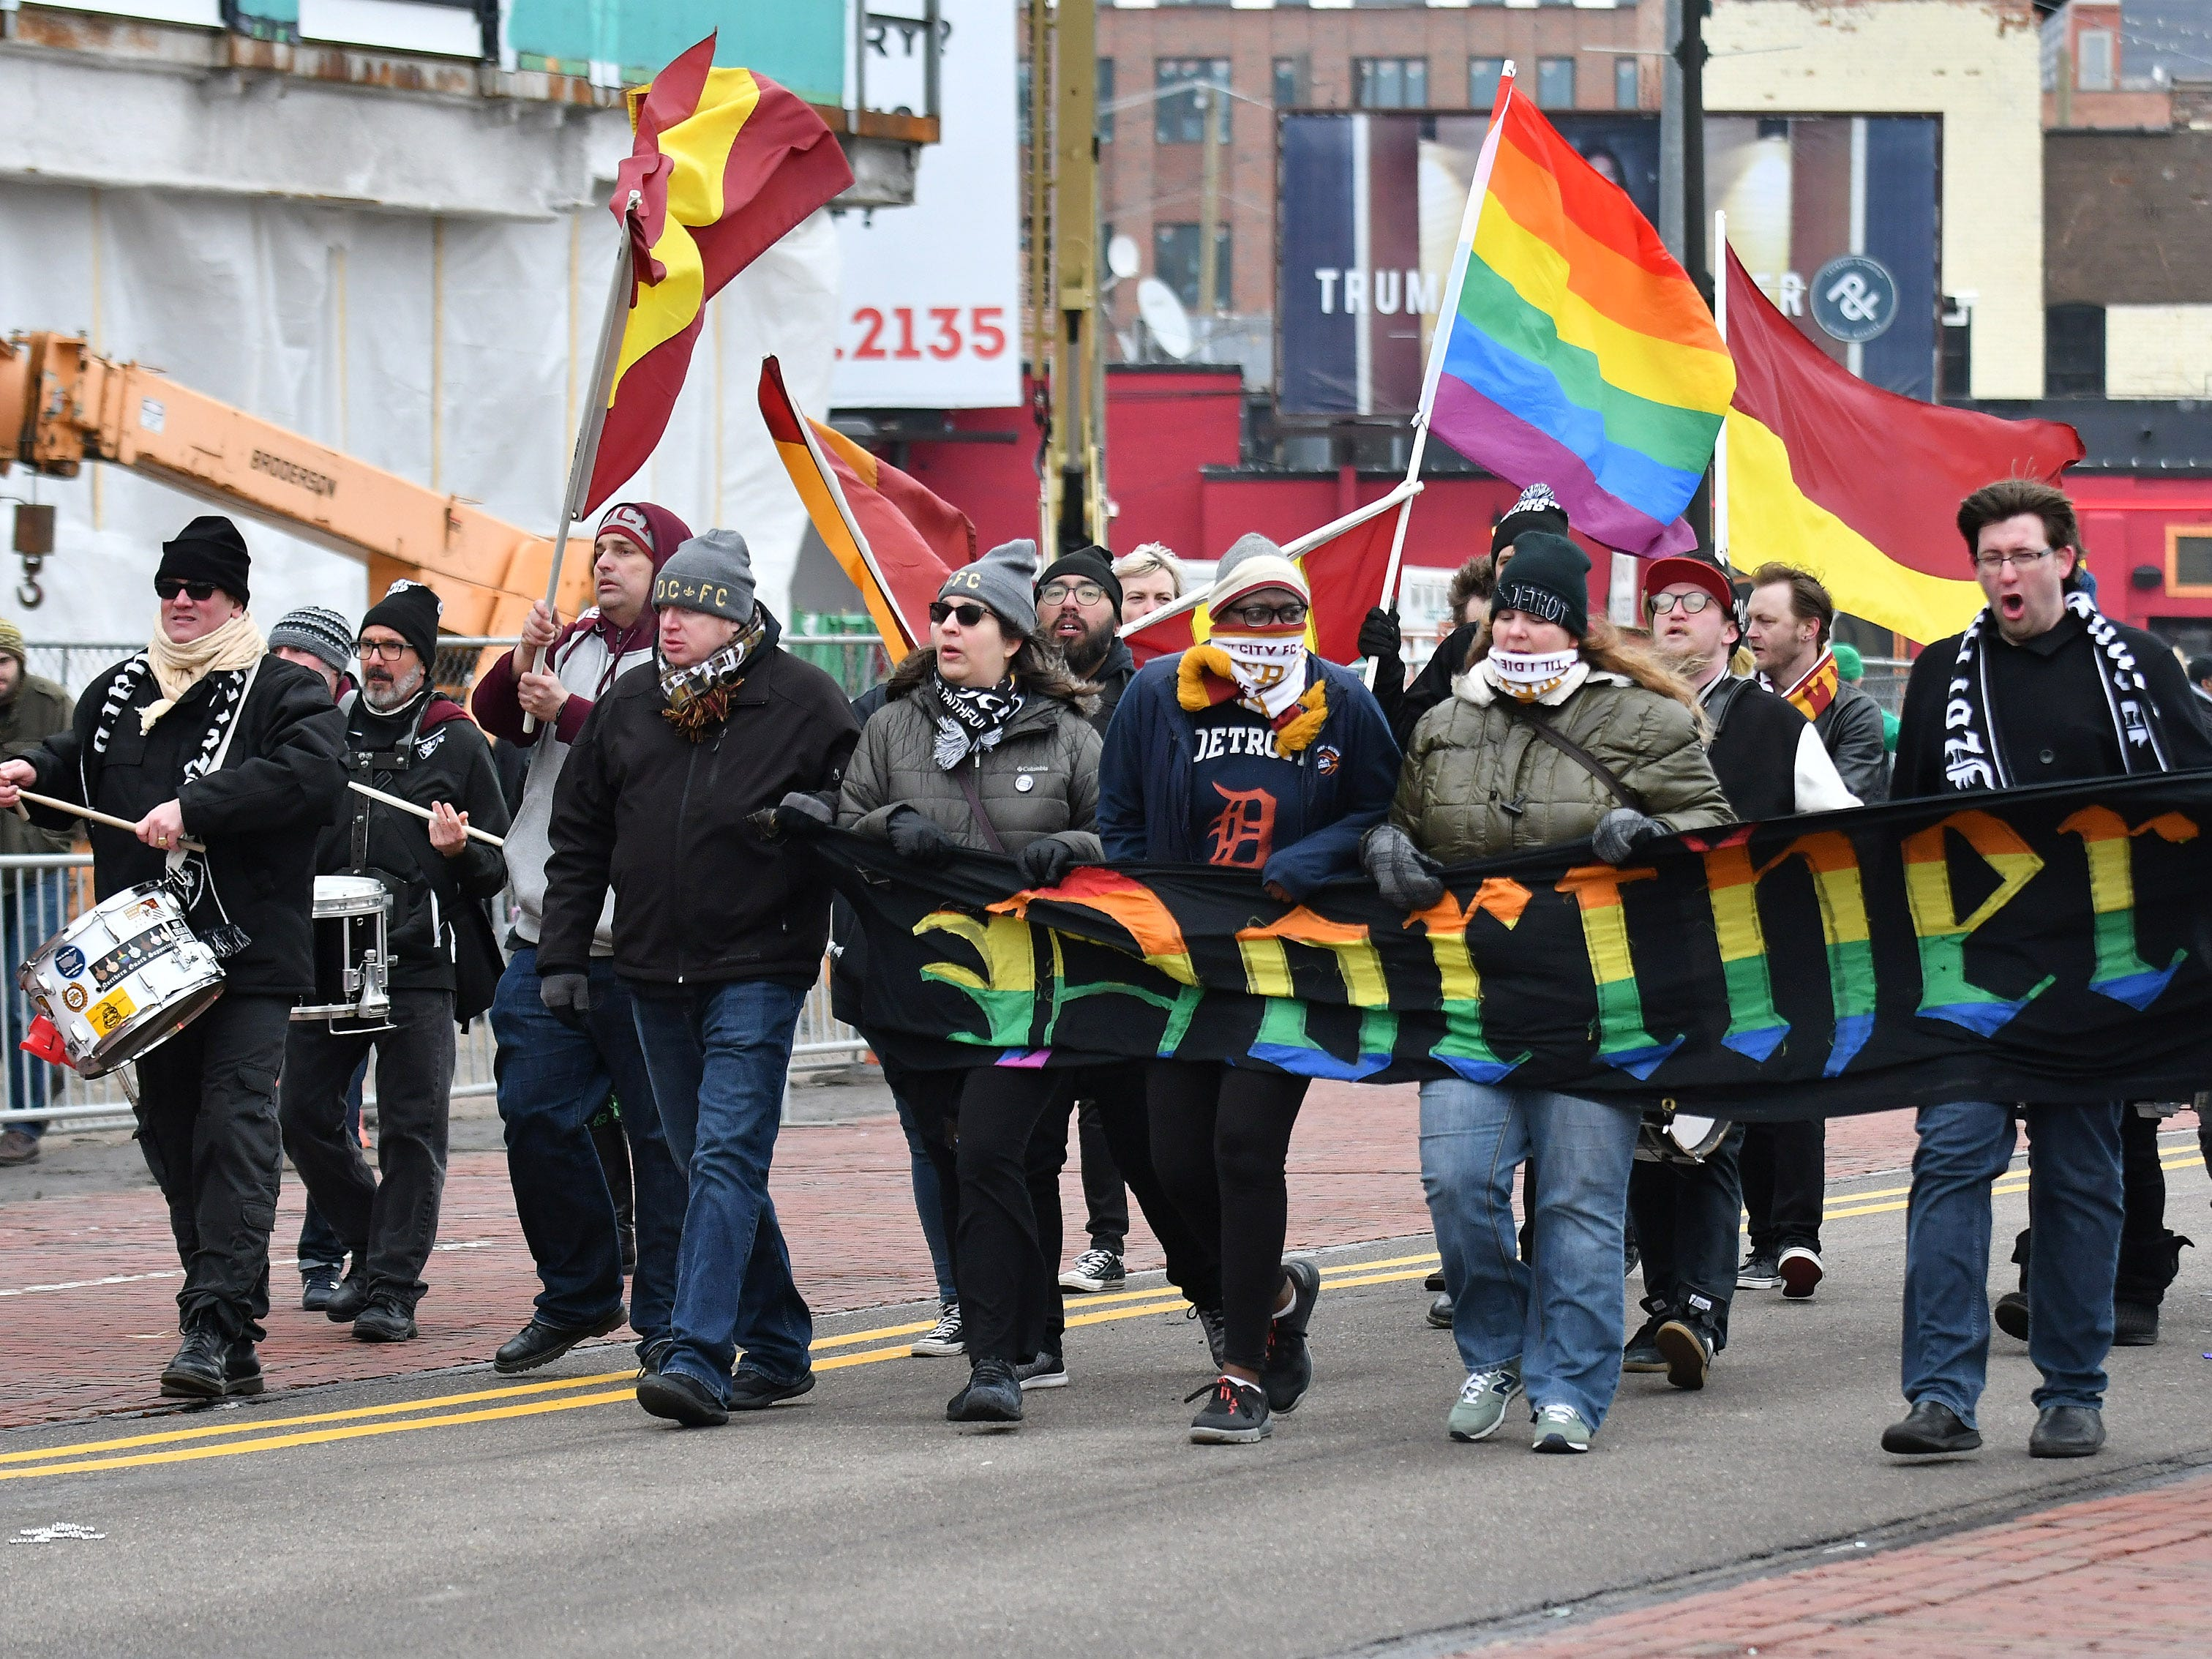 Supporters of the Detroit City Football Club march in the parade.